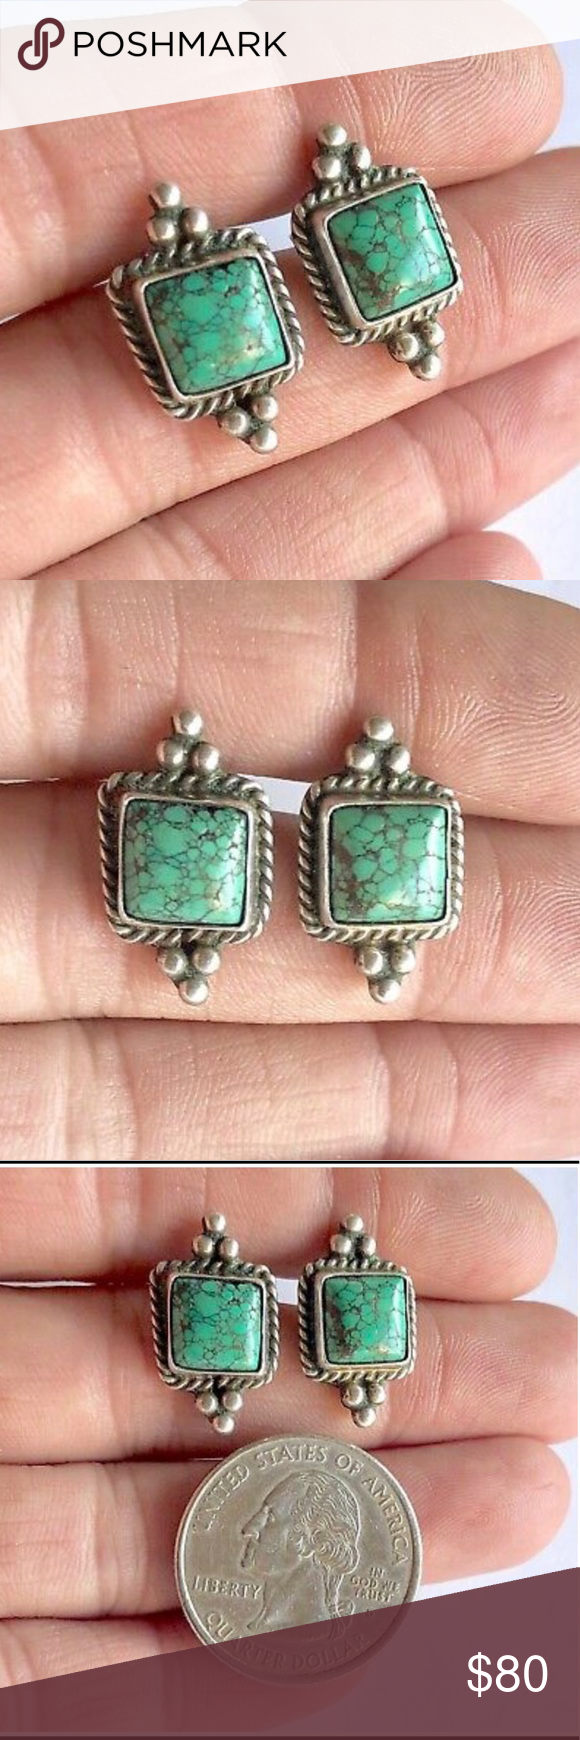 4afbe4b25 Signed Navajo Sterling Turquoise Stud Earrings Vintage Pauline Dolly Foutz  Signed Navajo Sterling Silver Green Spiderweb